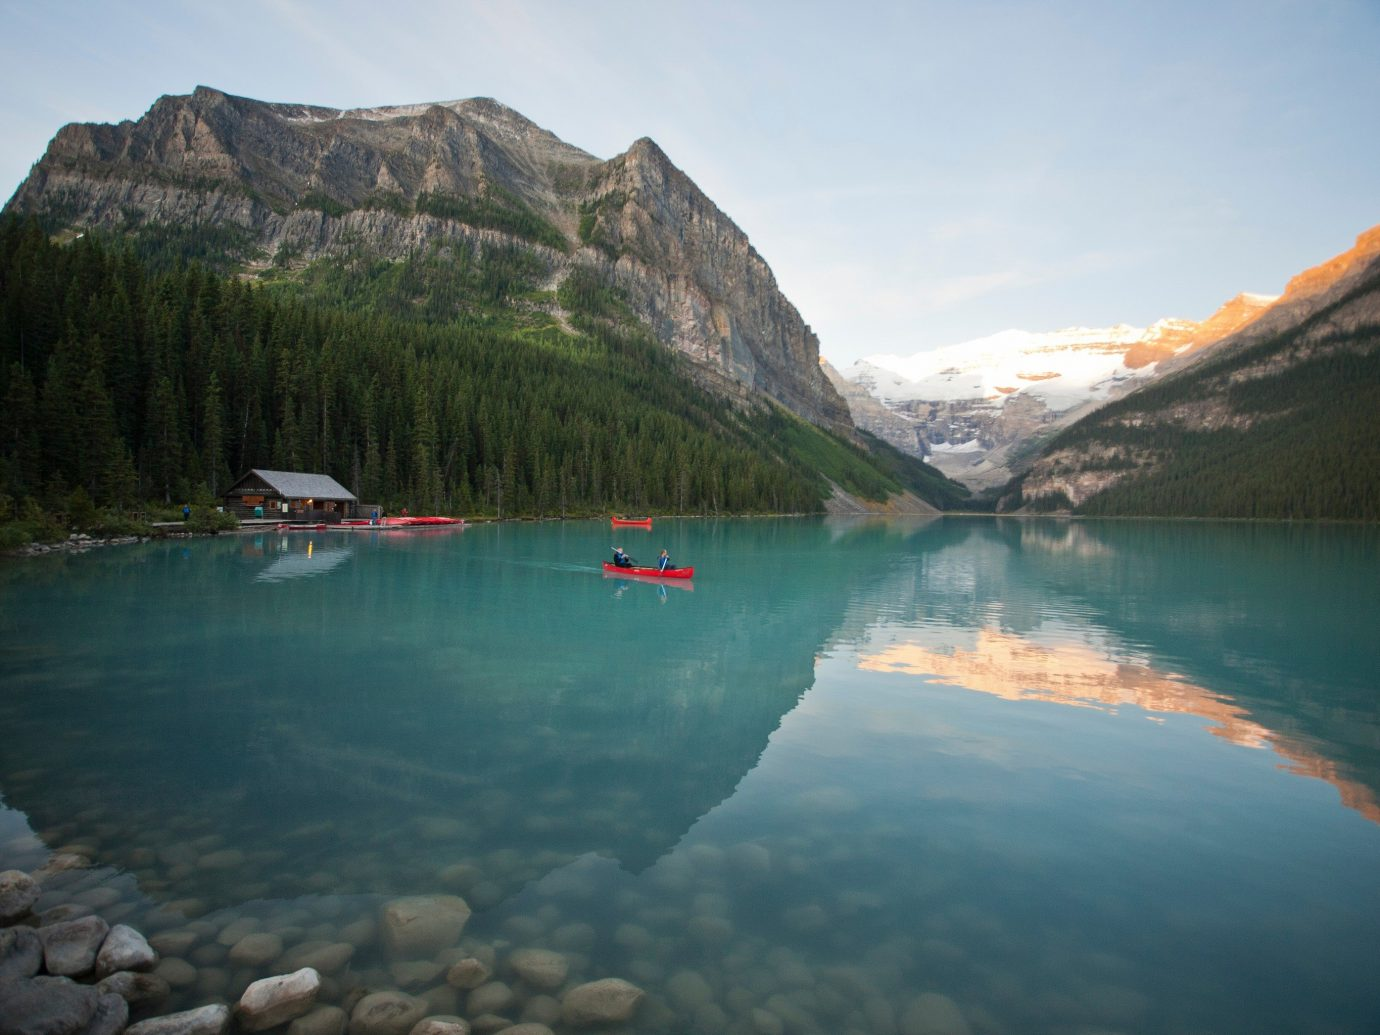 Adventure Mountains + Skiing National Parks Outdoors + Adventure Trip Ideas Weekend Getaways mountain water outdoor Nature sky mountainous landforms valley Lake body of water mountain range reflection loch fjord reservoir Sea canyon bay alps surrounded crater lake day